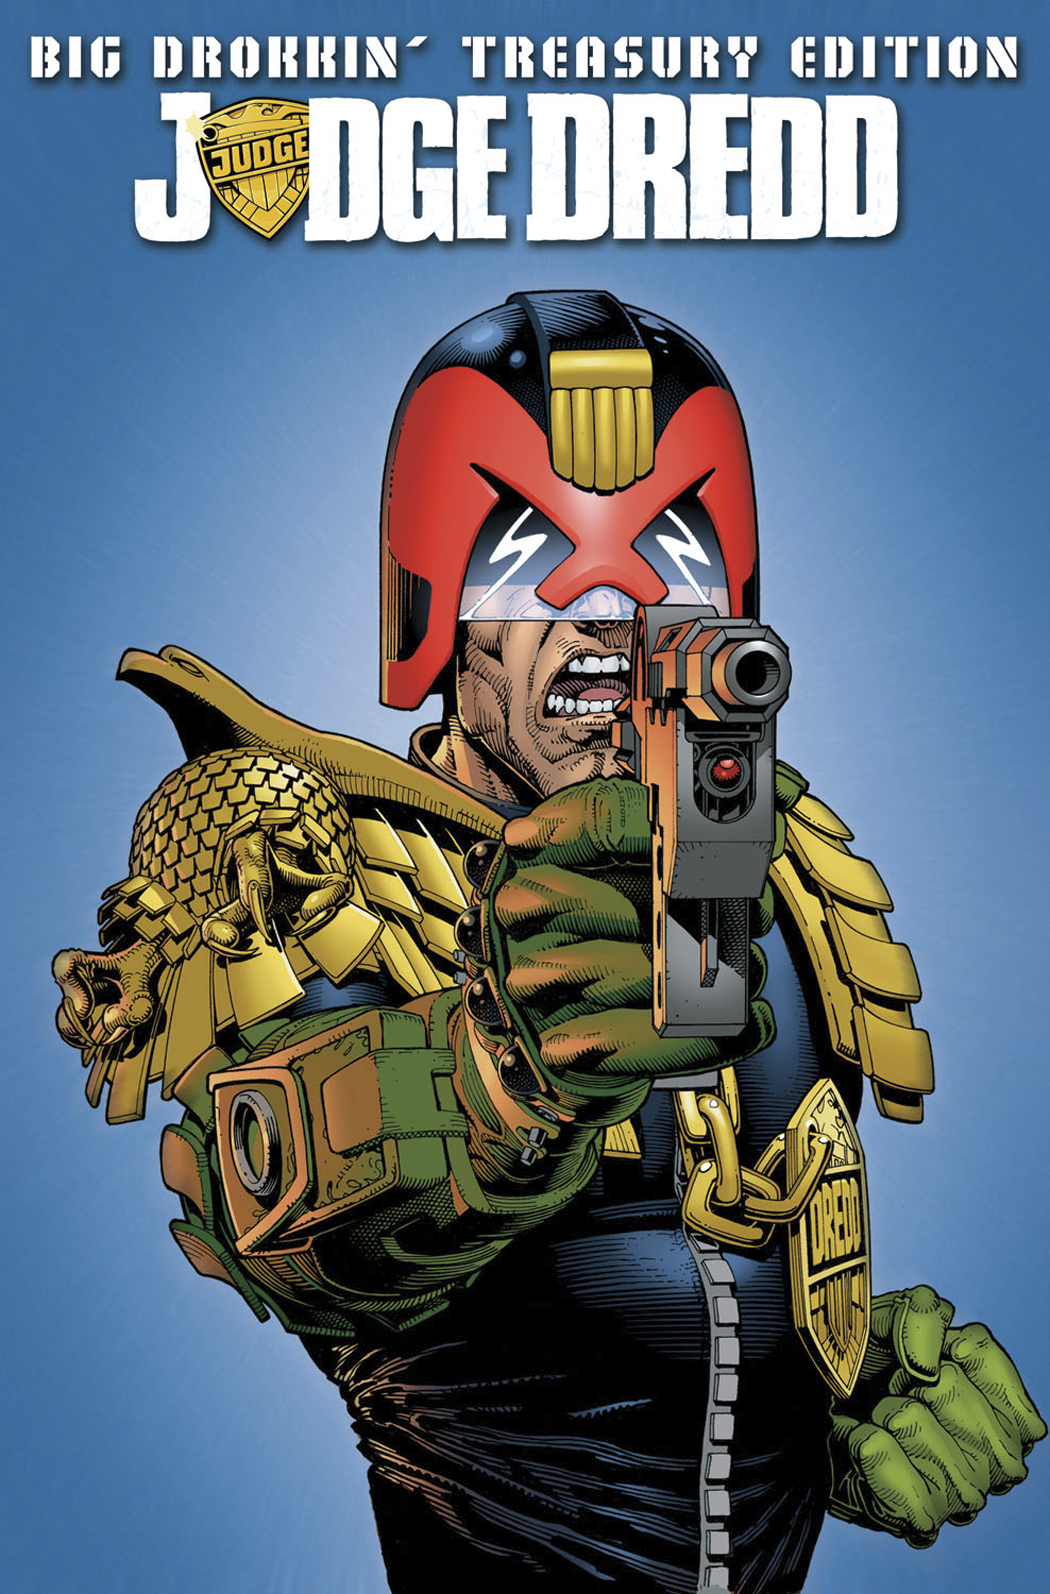 JUDGE DREDD BIG DROKKIN TREASURY ED